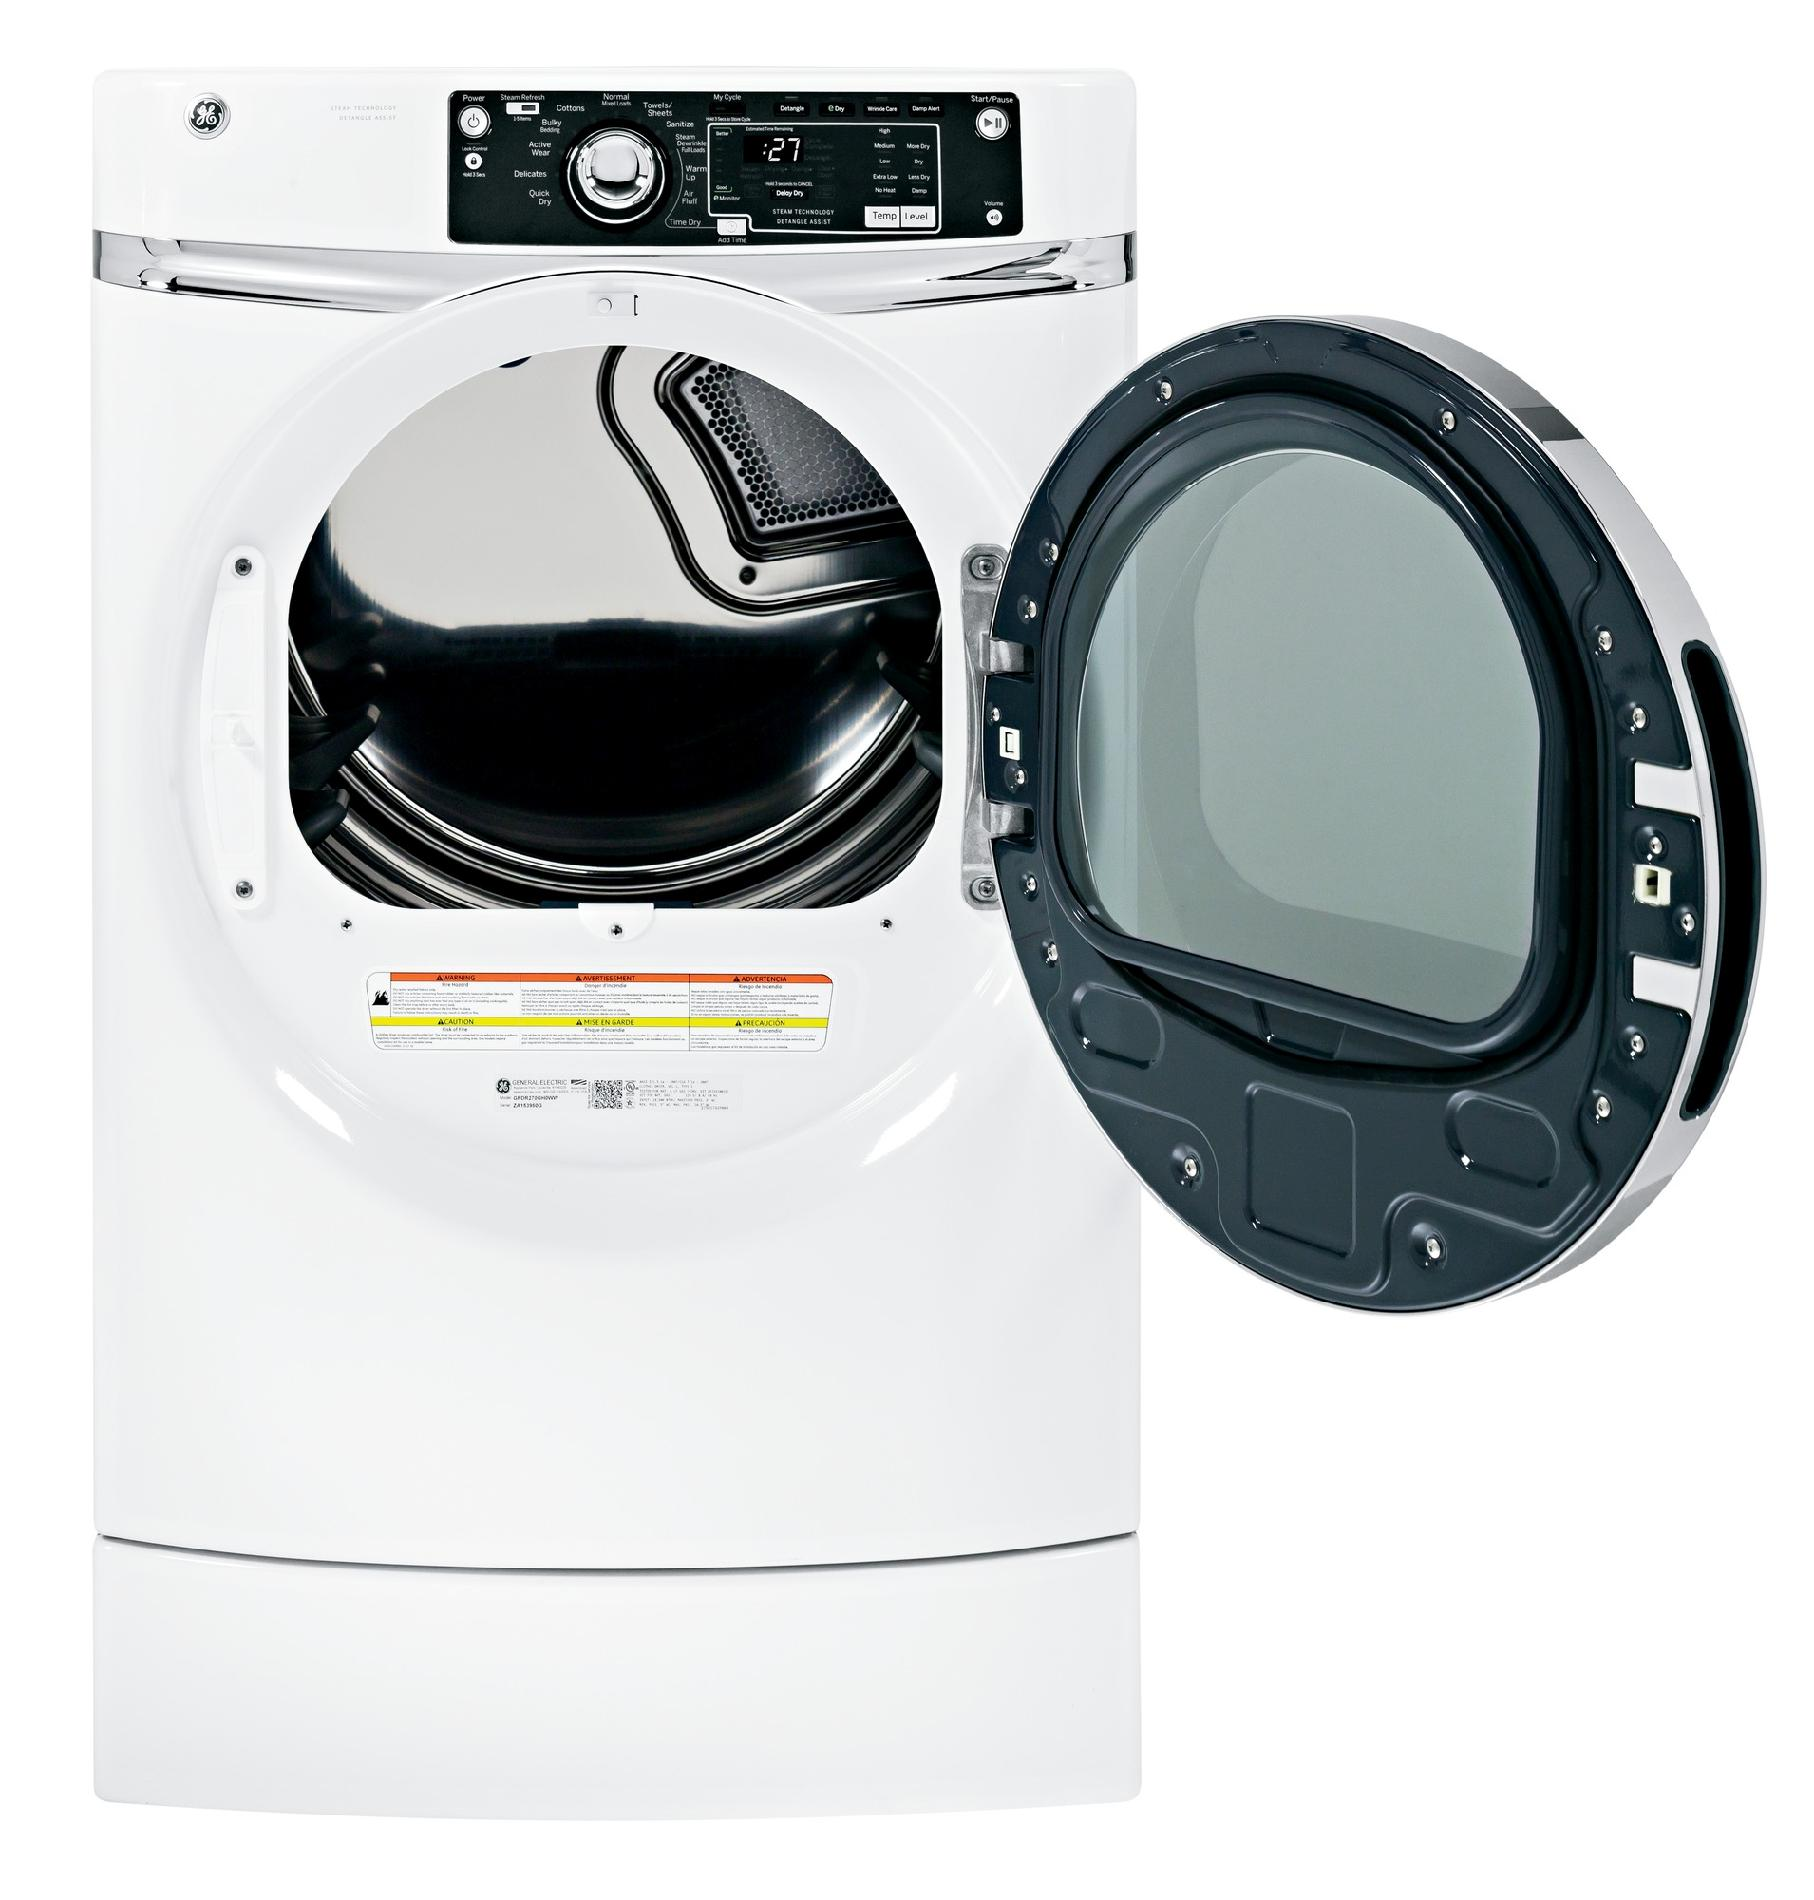 GE Appliances GFDR270EHWW 8.1 cu. ft. RightHeight™ Design Electric Dryer w/ Steam - White